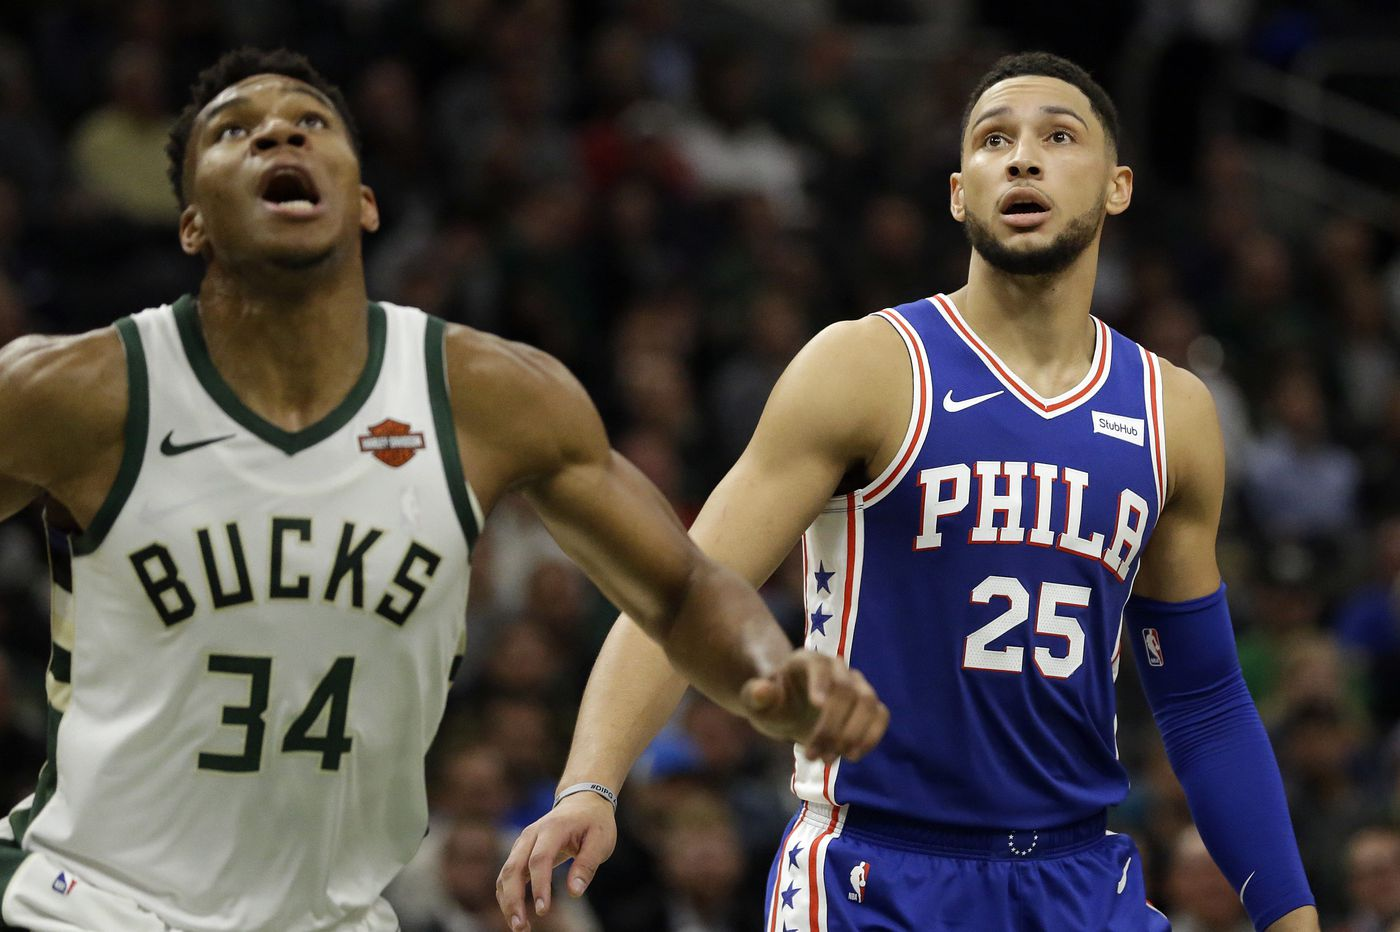 Sixers-Bucks observations, best and worst awards: Giannis Antetokounmpo, Ben Simmons, woeful team display